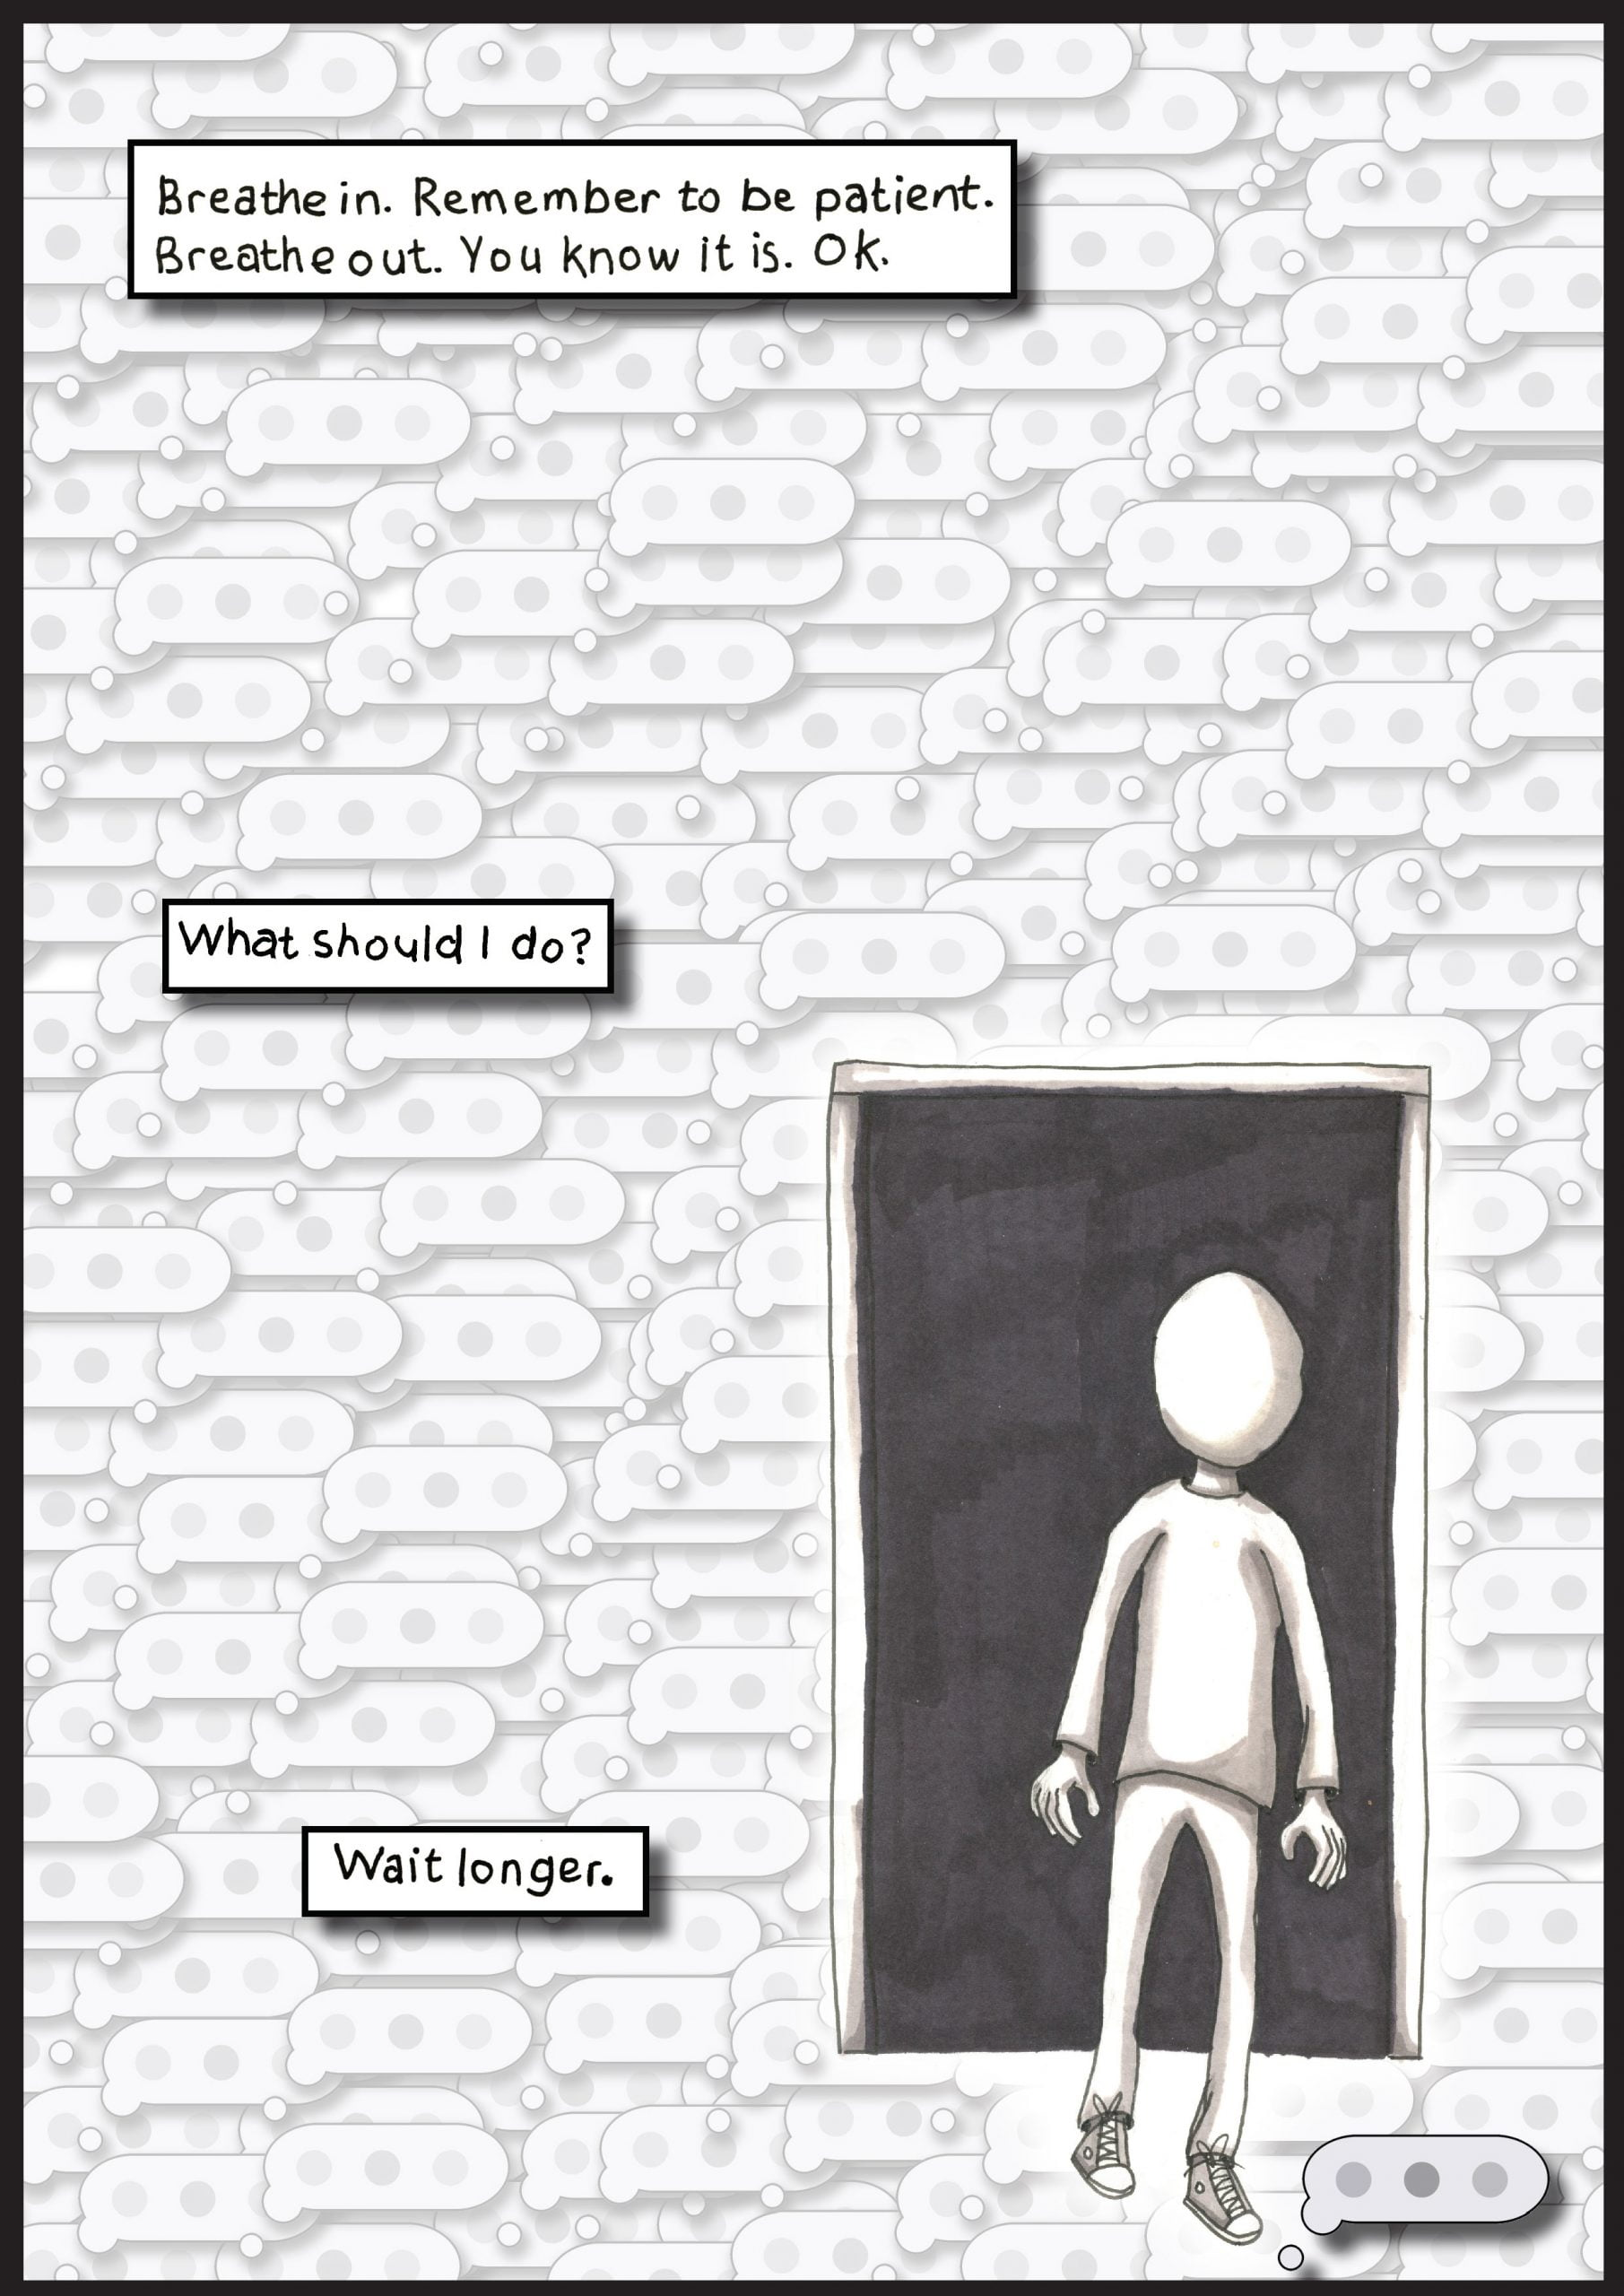 """A small speech bubble containing three dots, like typing in a messaging app, is multiplied all over the background of this page in a faint grey. They overlap and layer on top of one another, concealing the blank page behind. A figure with a blank head appears from a darkened doorway. Hands loose. Three text boxes are spread across the page from top to bottom. They read: """"Wait longer"""", """"What should I do?"""" and """"Breath in. Remember to be patient. Breathe out. You know it is. Ok."""""""